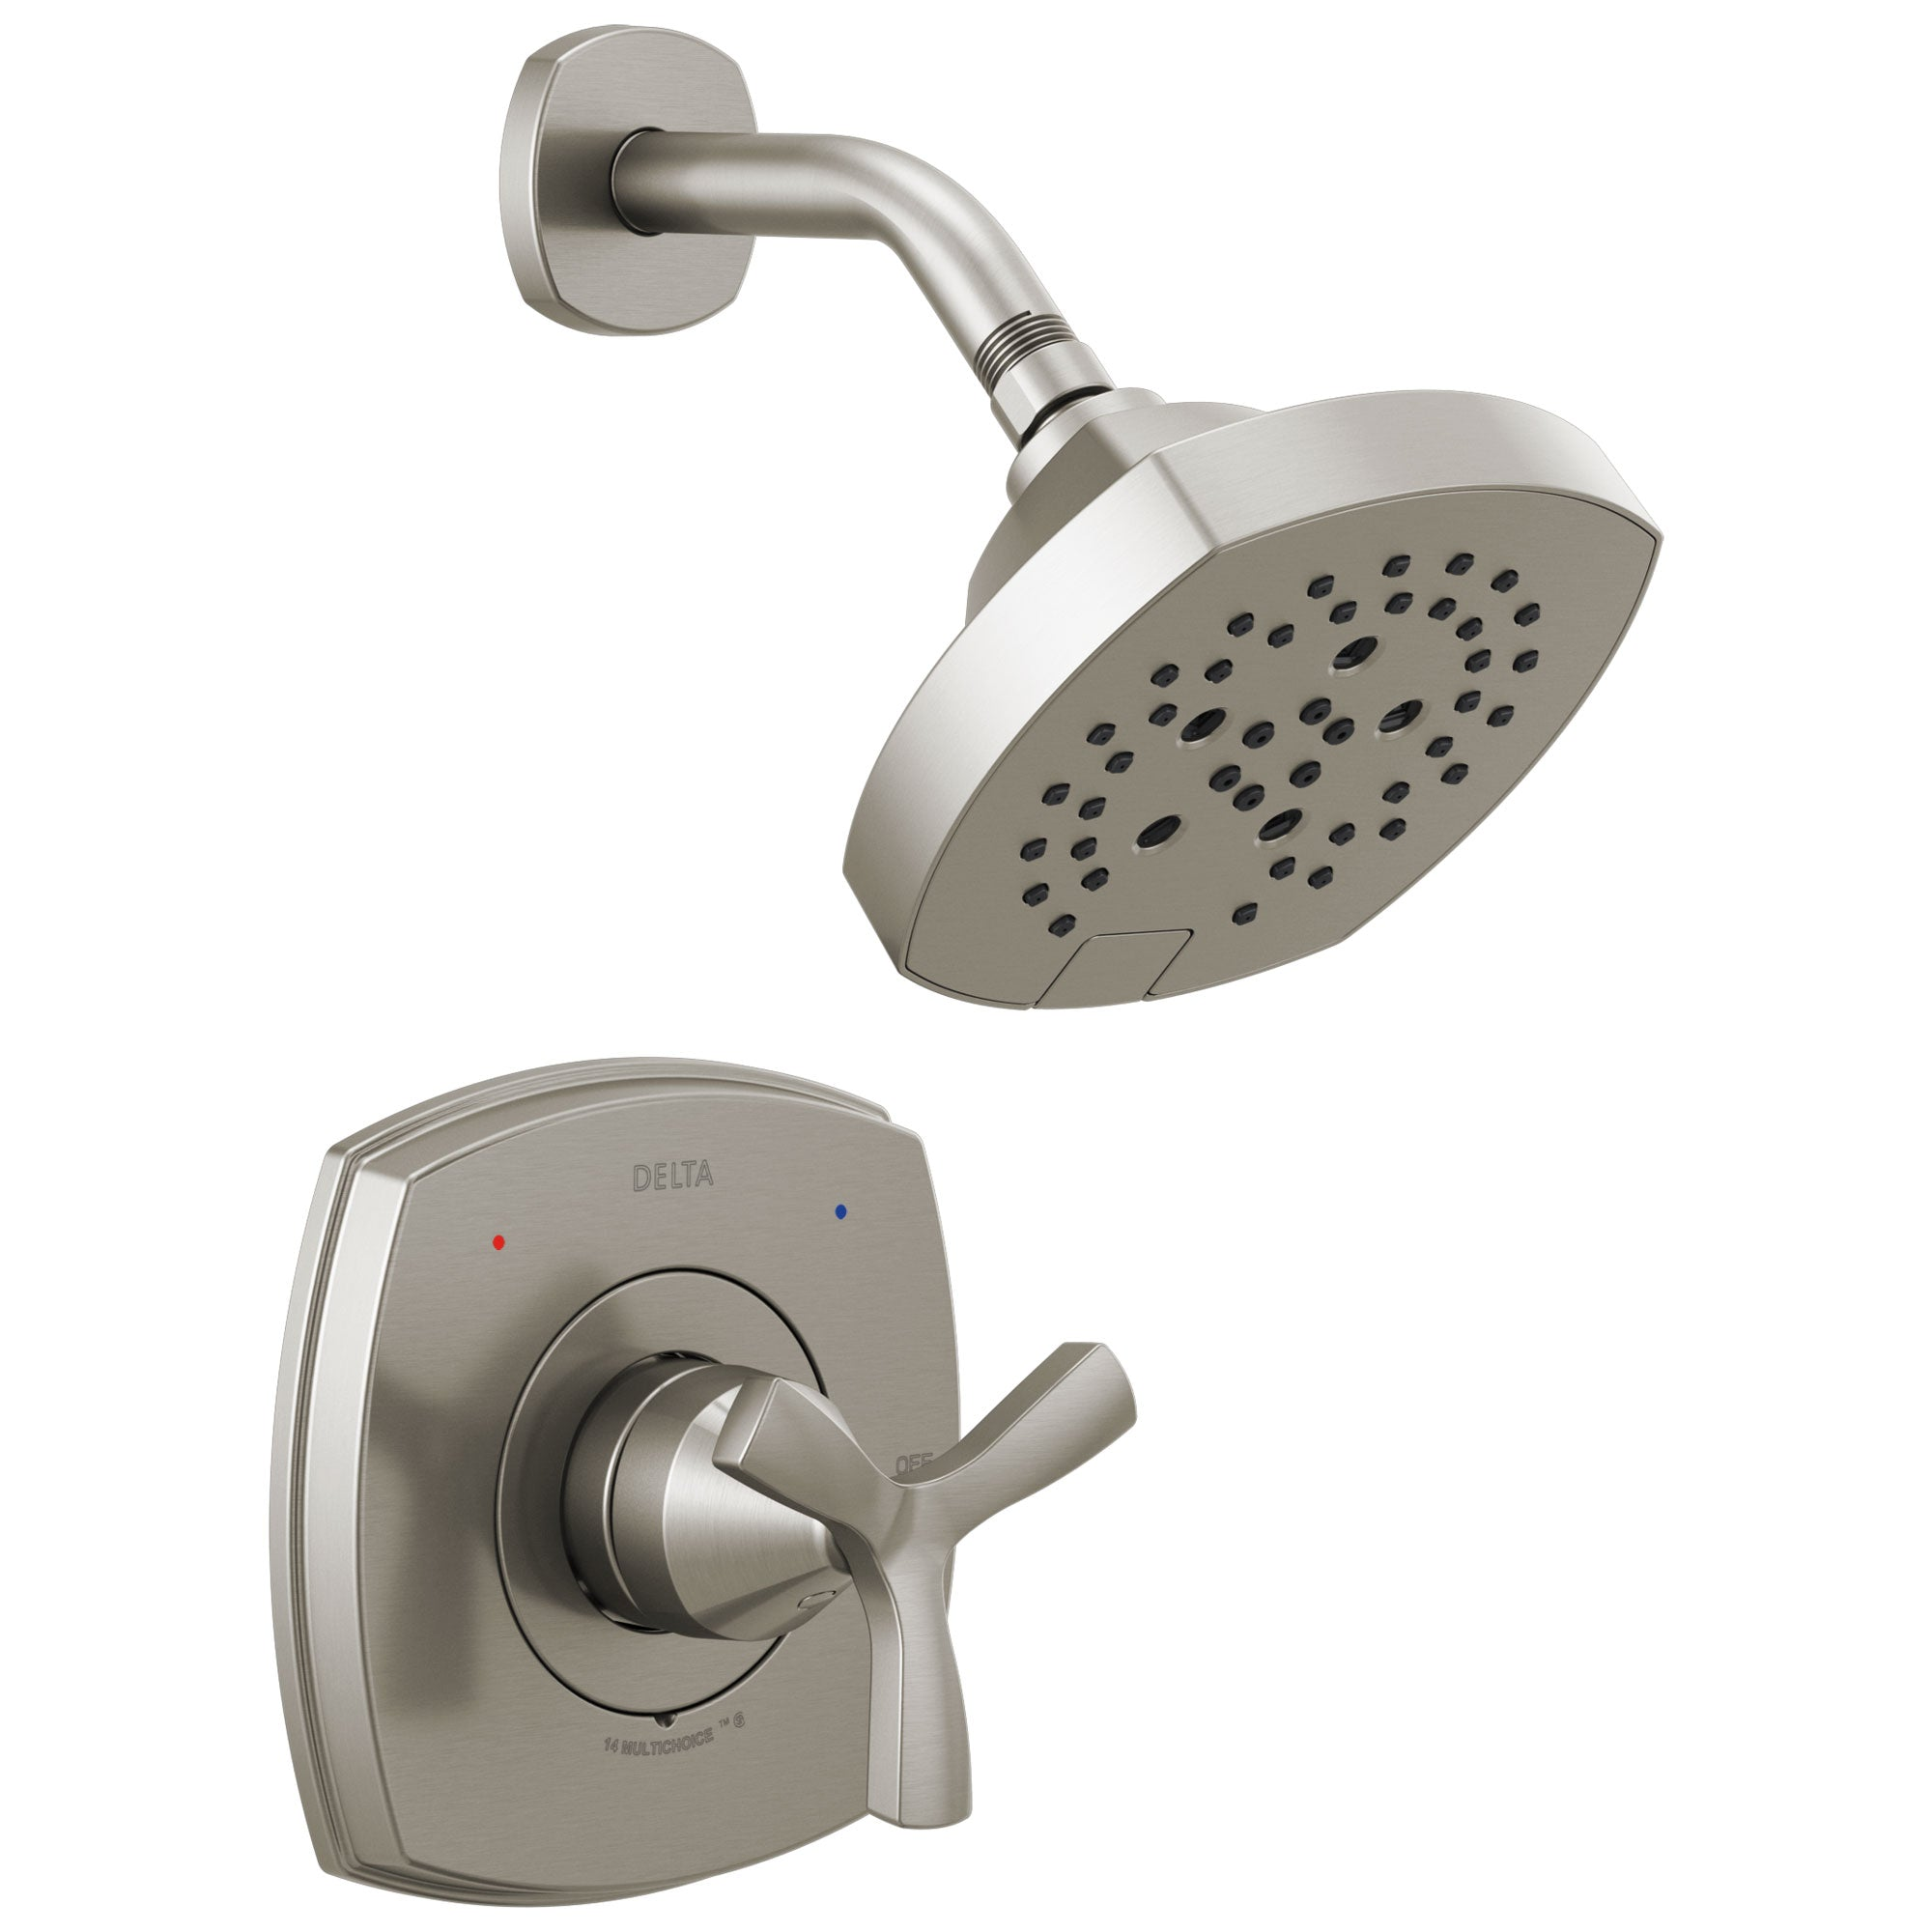 Delta Stryke Stainless Steel Finish 14 Series Shower Only Faucet Includes Helo Cross Handle, Cartridge, and Rough-in Valve without Stops D3493V